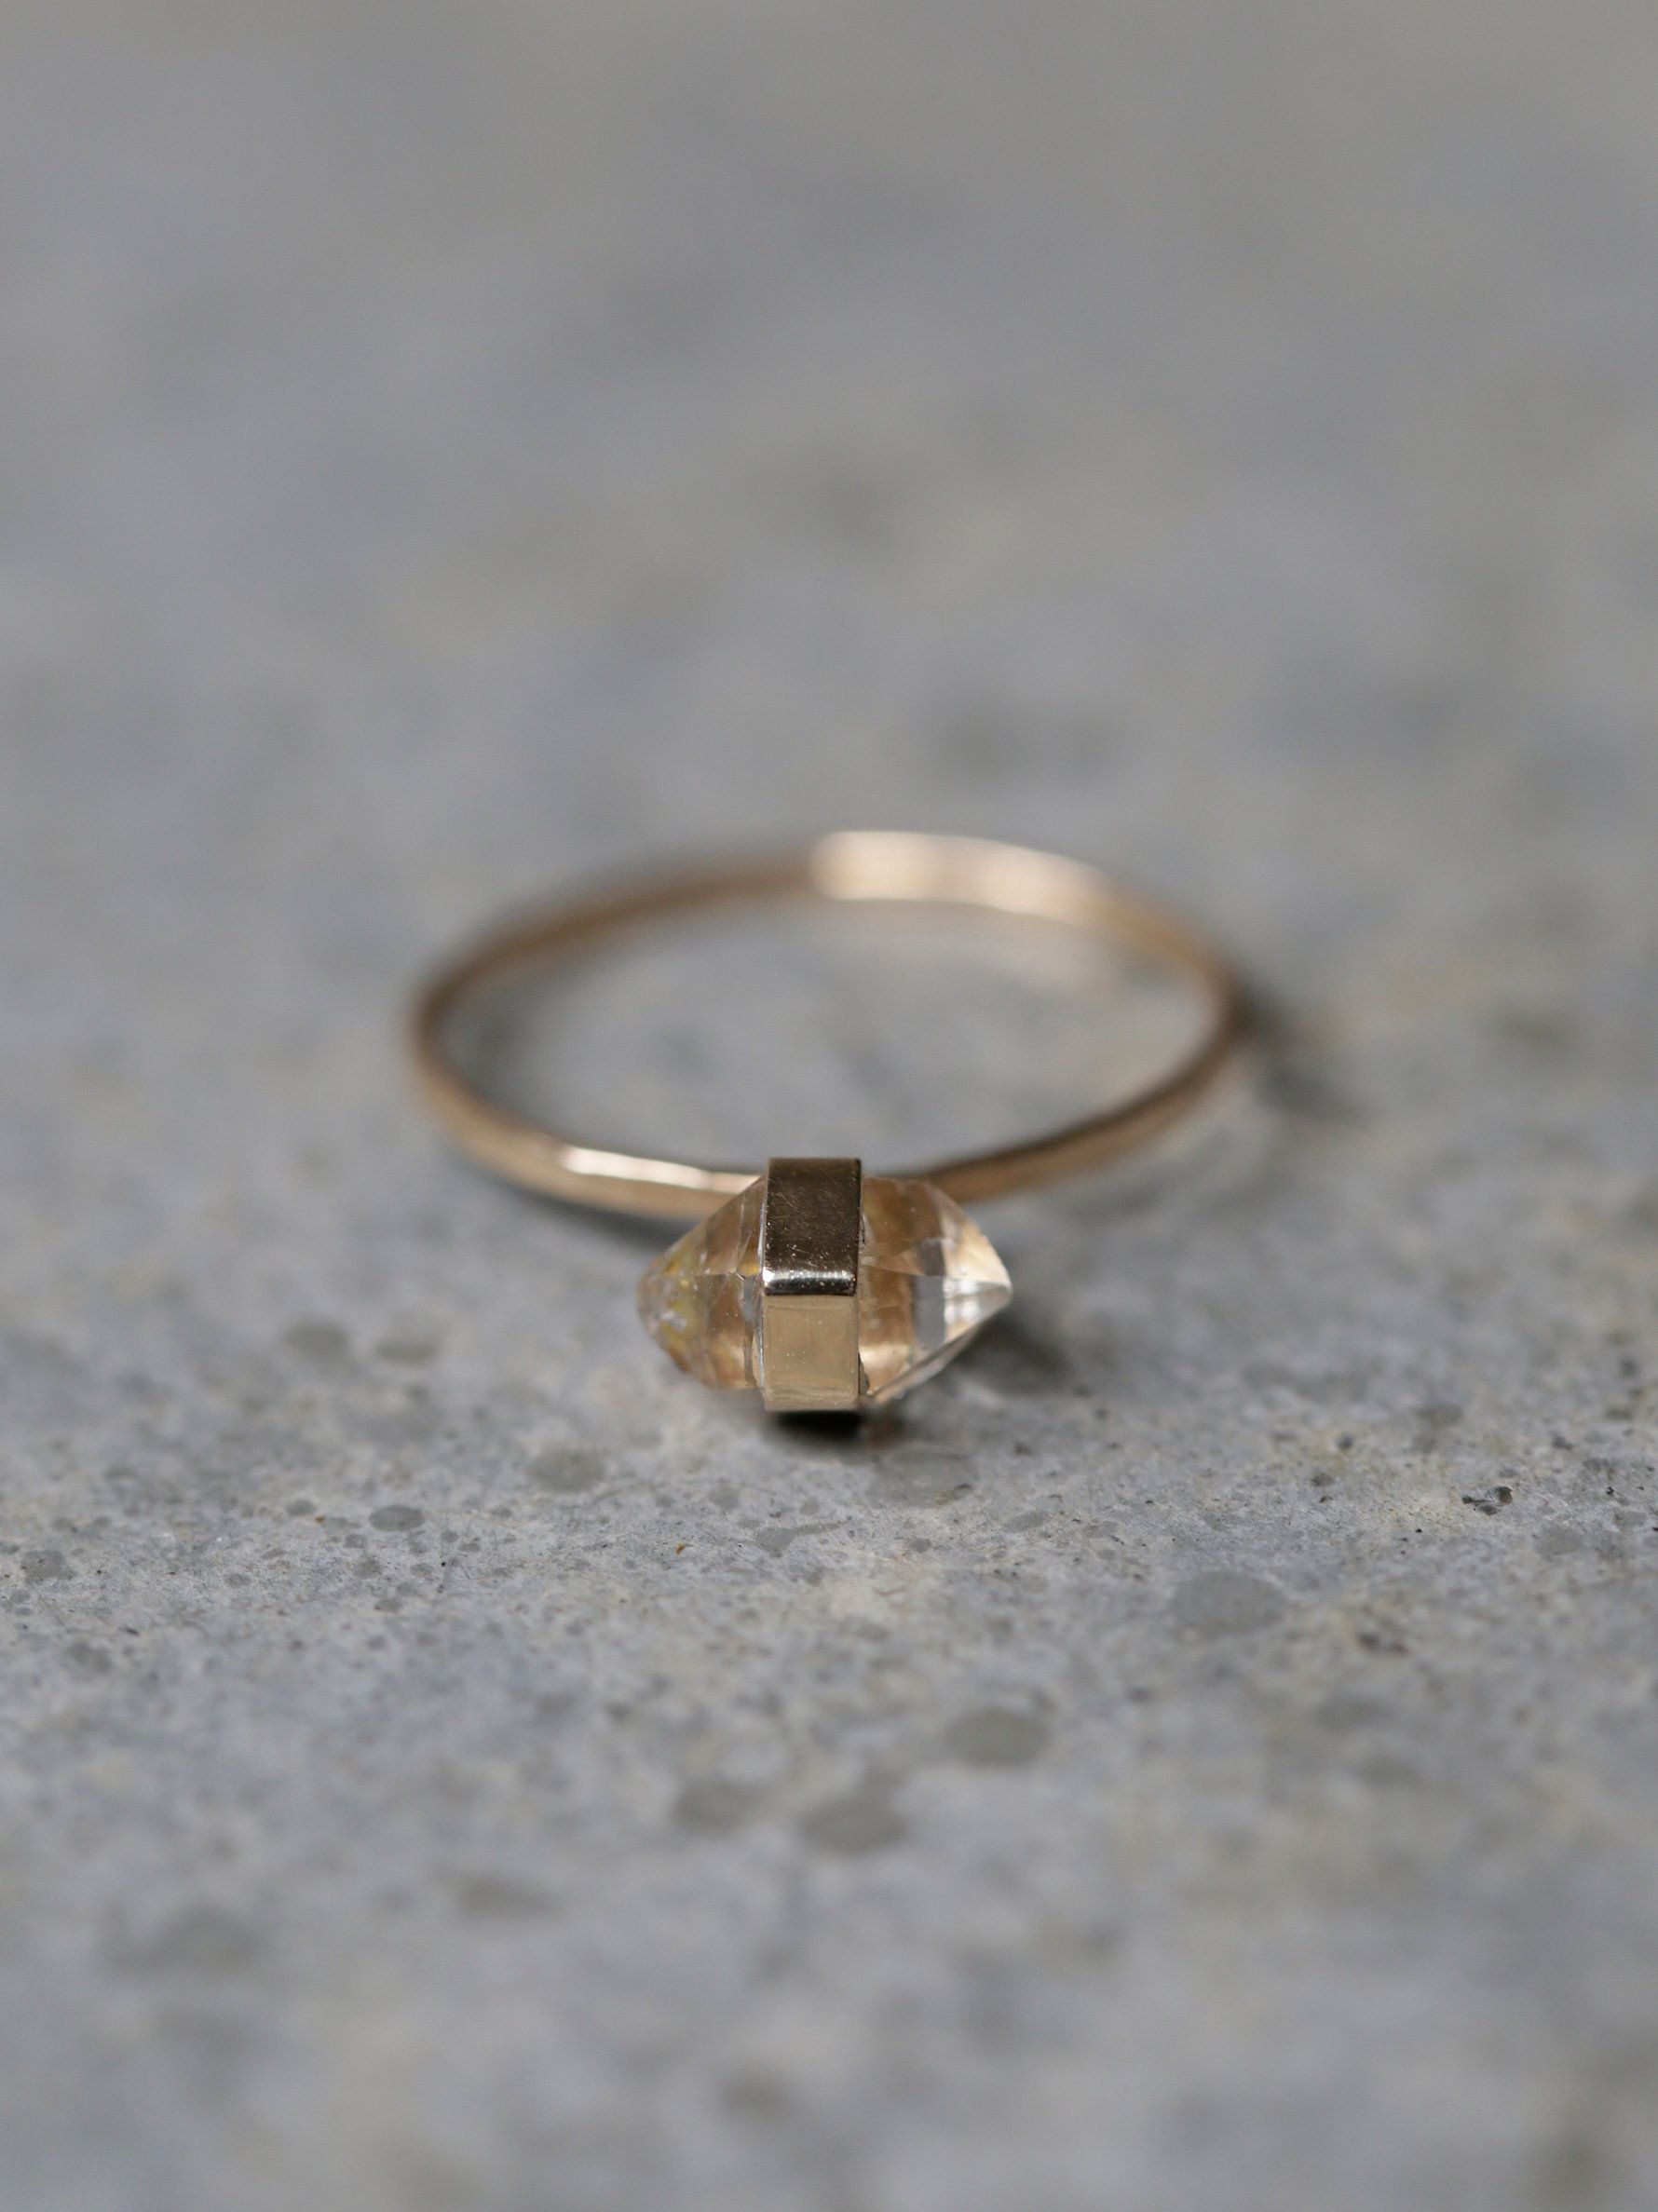 Herkimer diamond ring american made limited edition ring with a